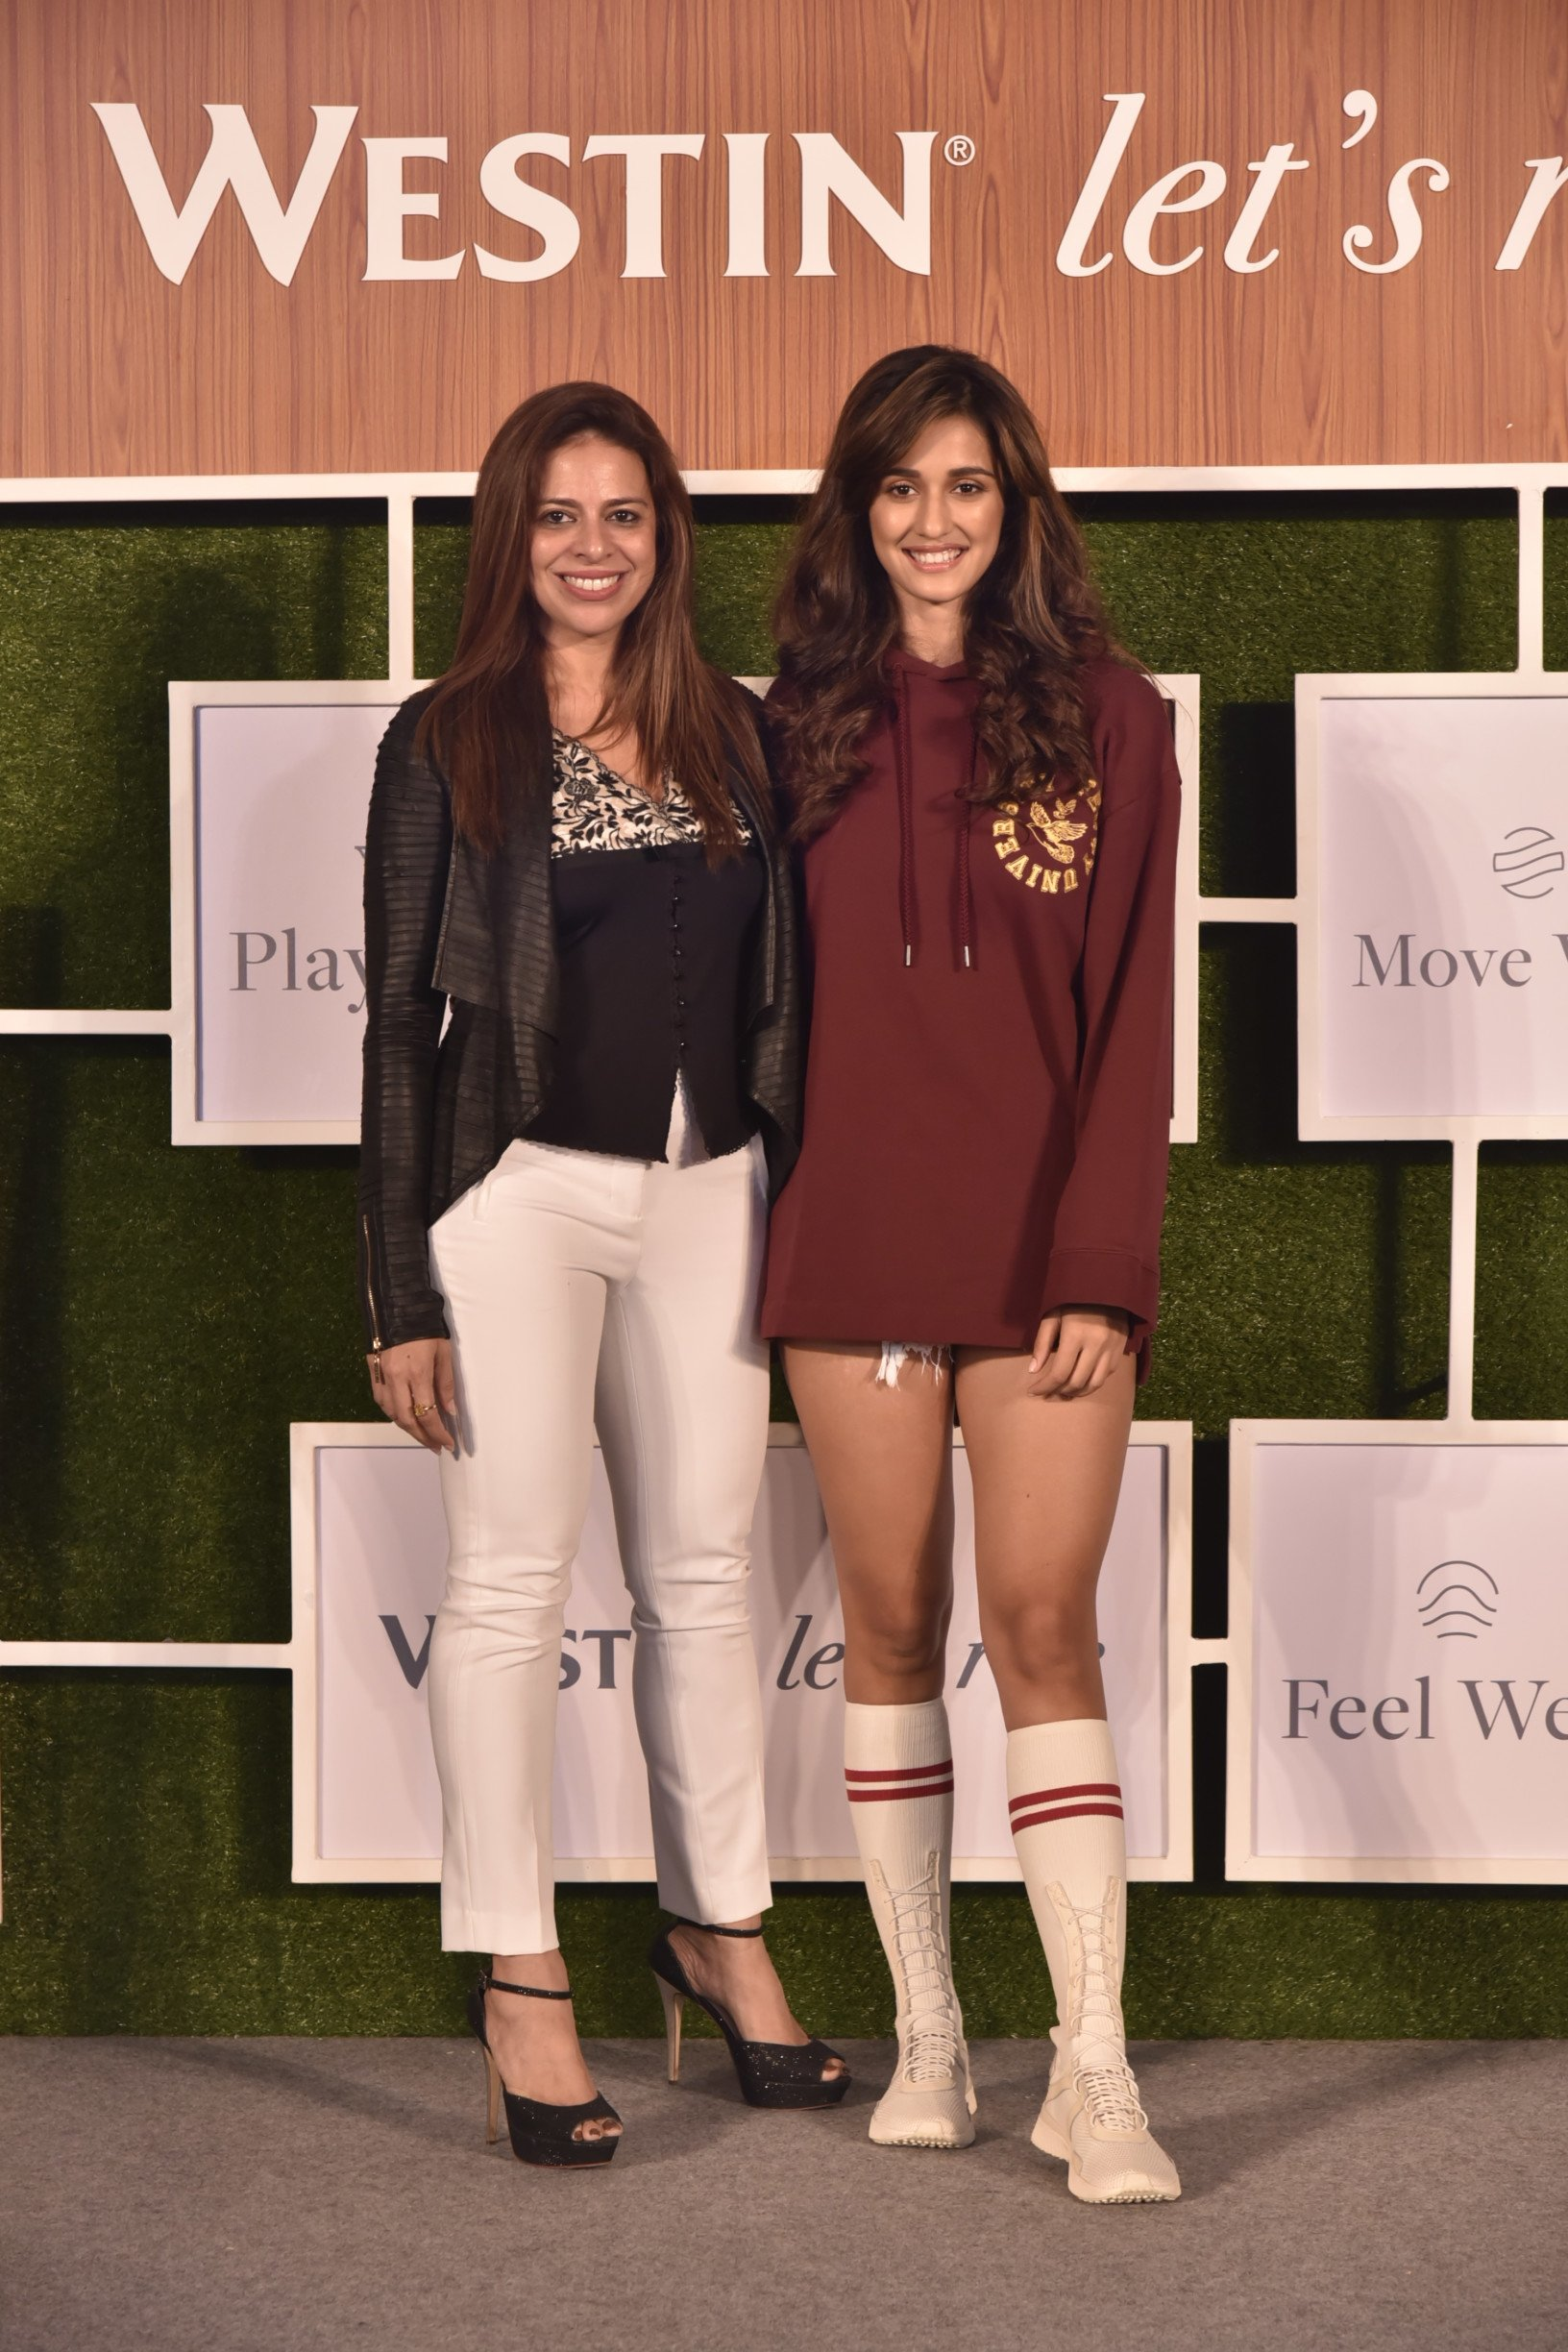 Westin Hotels & Resorts Appoints Actress Disha Patani As 'Well-Being Brand Advocate' In India